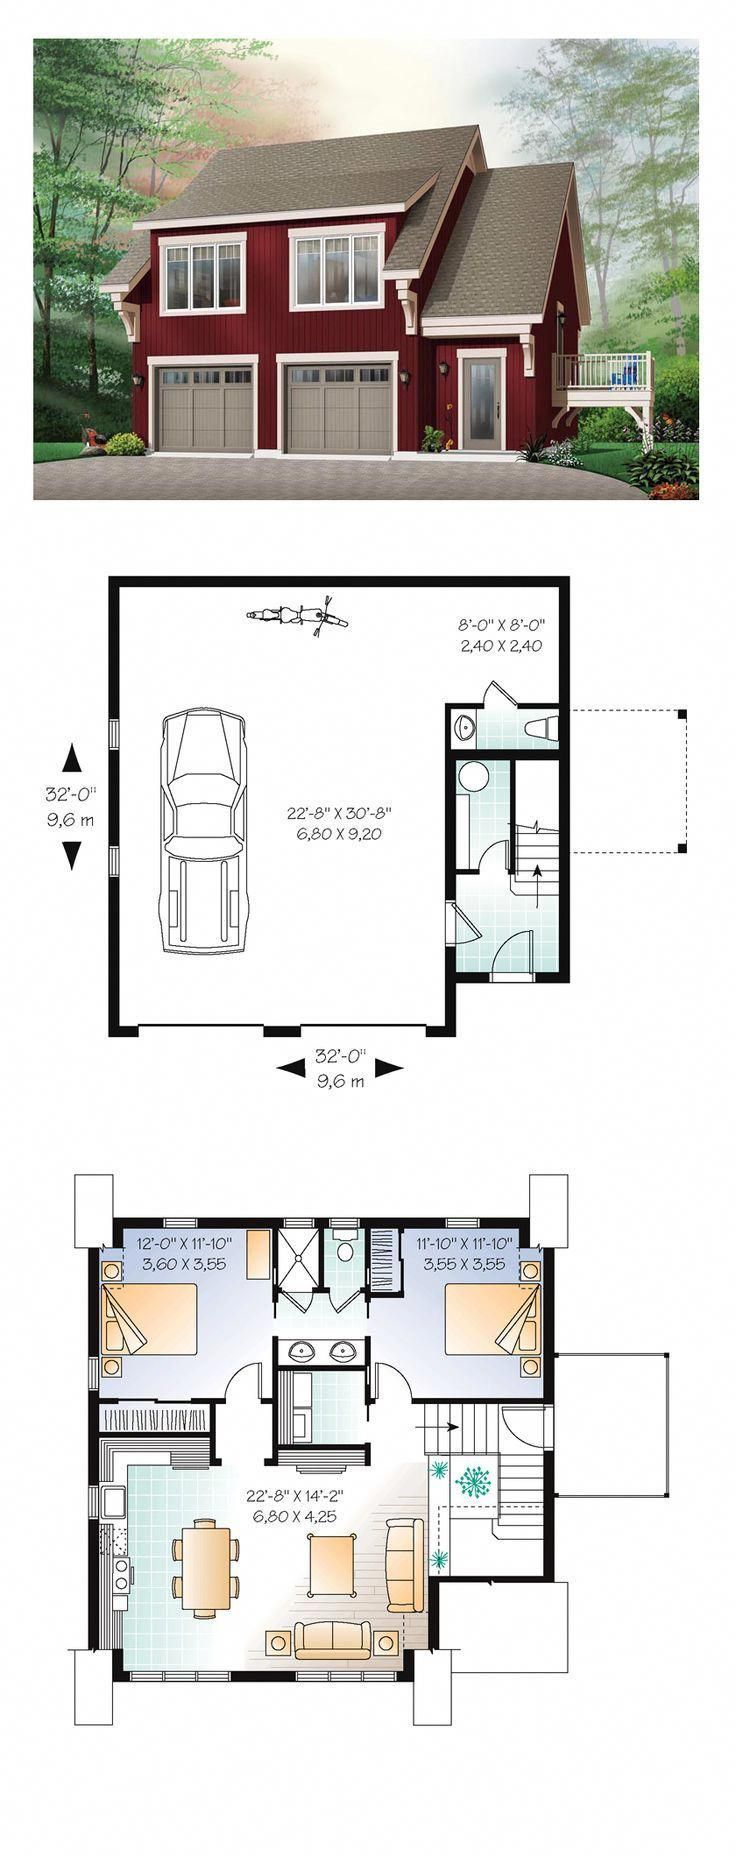 Click To Check Out Even More About Garage Apartment Ideas House Plans Garage Apartment Plans Apartment Plans